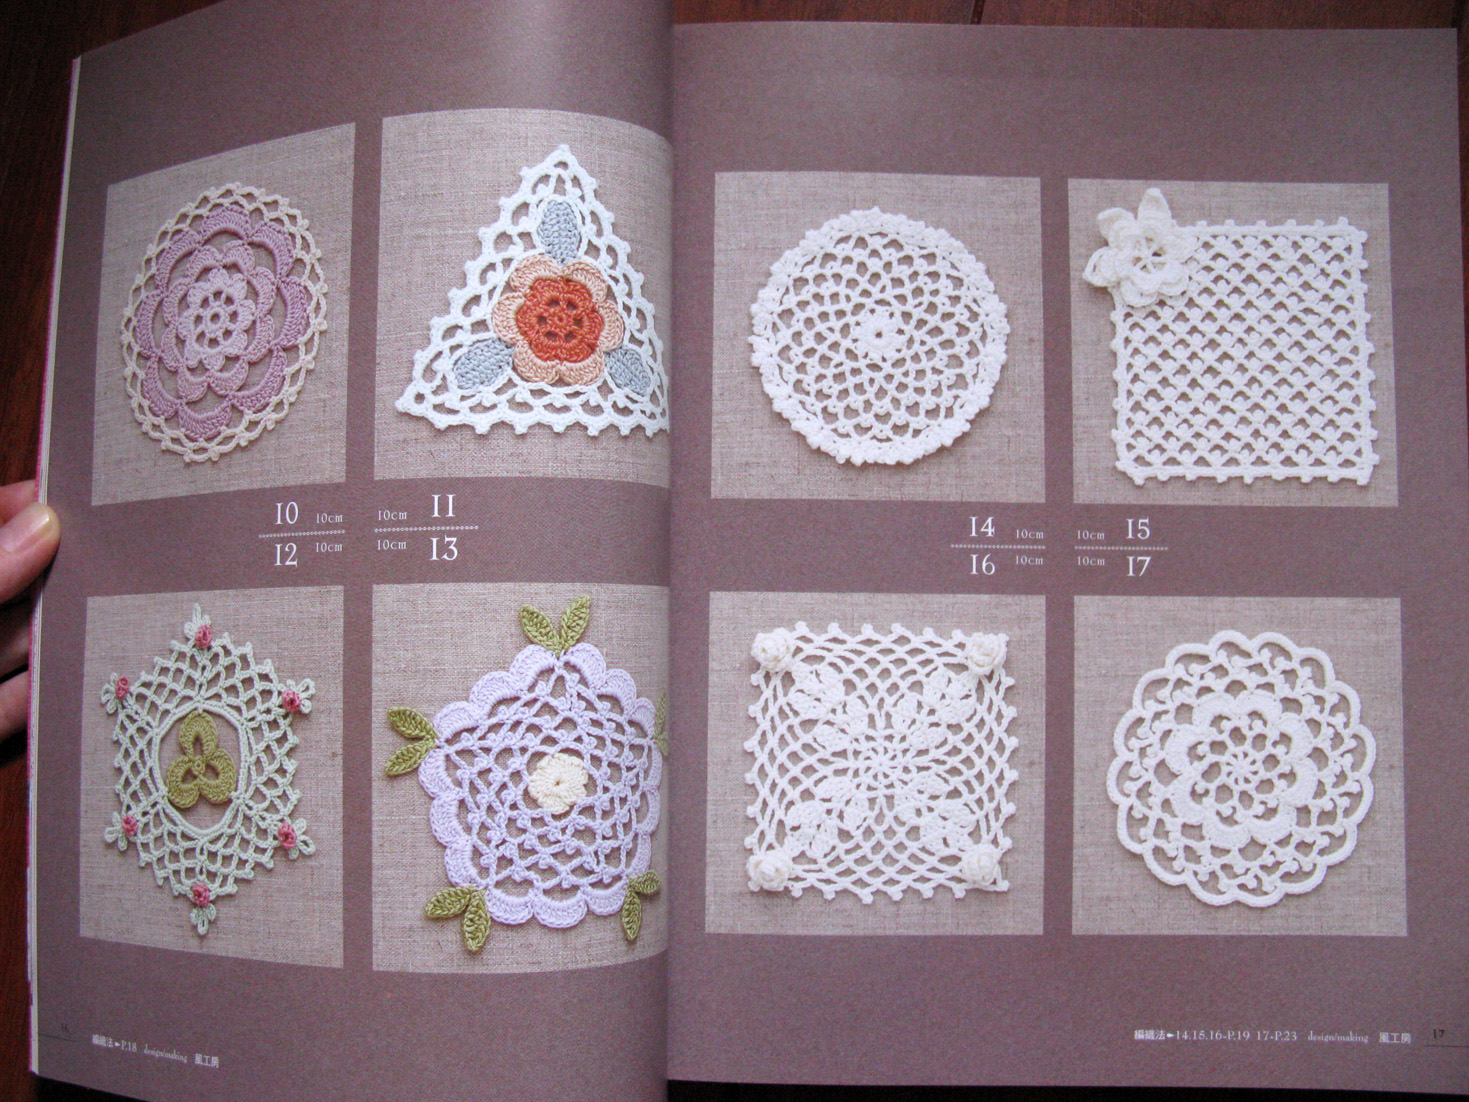 Japanese Crochet Diagrams http://namethatcandy.blogspot.com/2011/07/crochet-rose-pattern-100-japanese.html